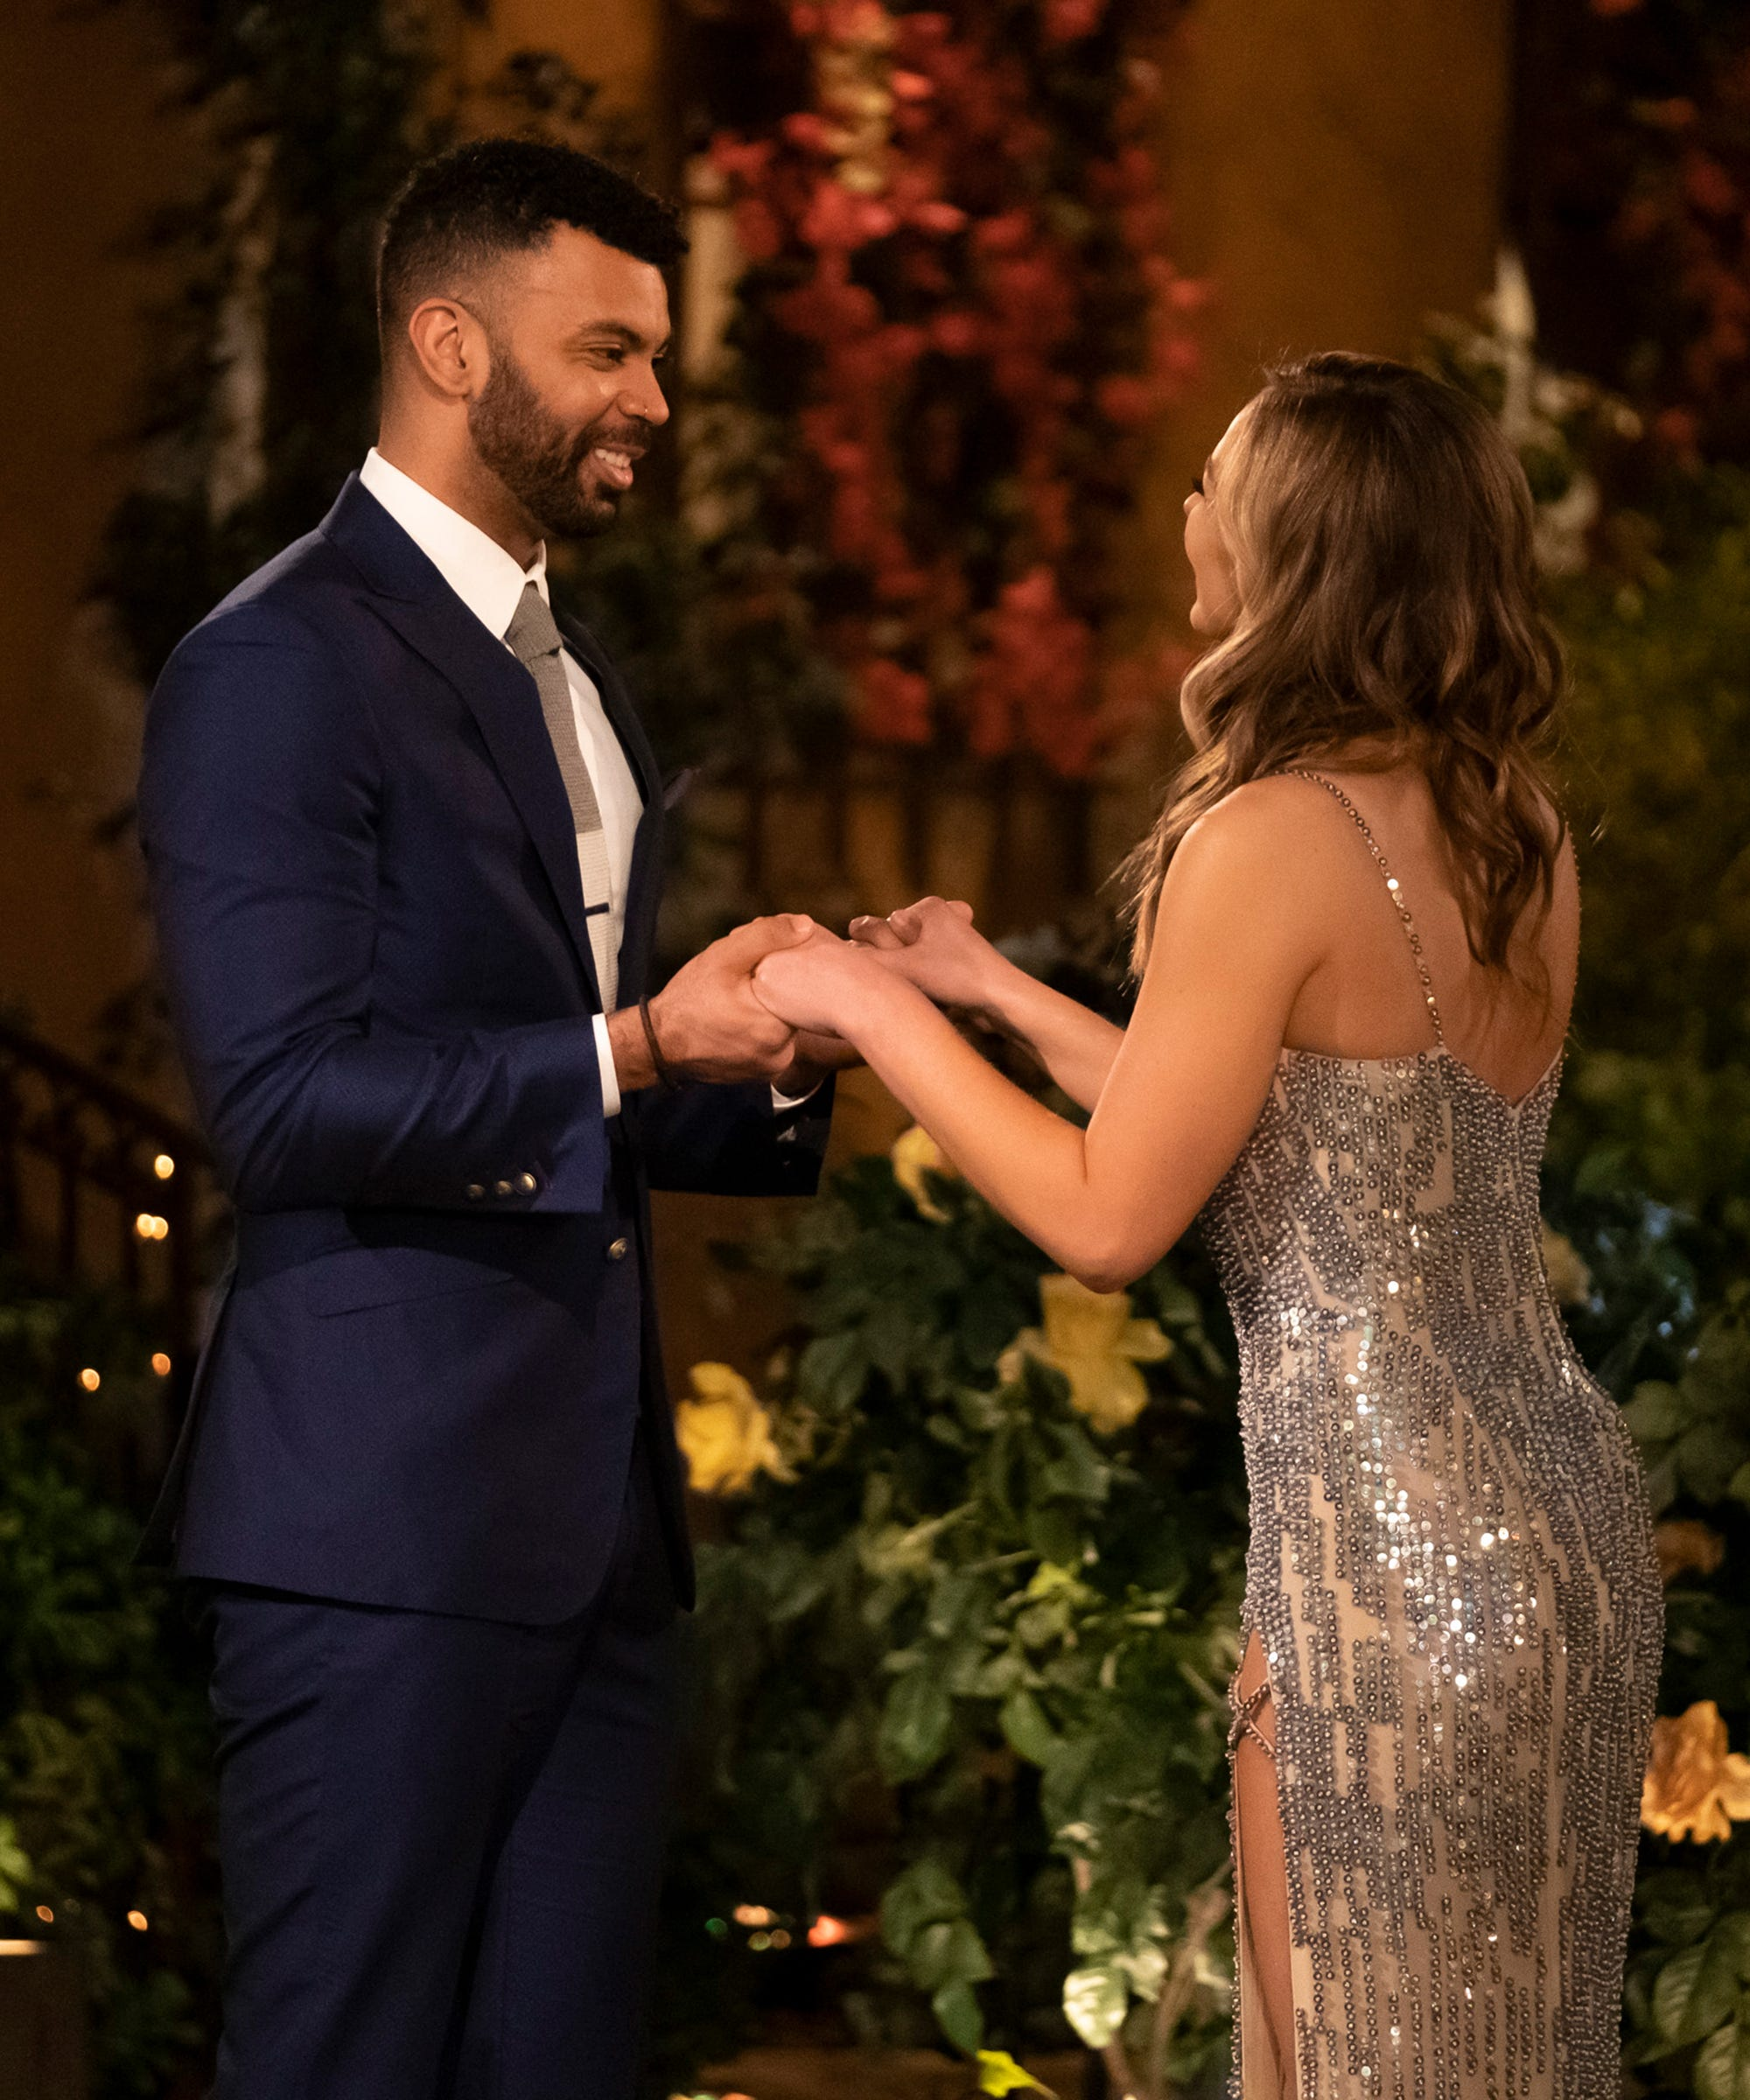 The Bachelorette's Dustin Has Another Gal In His Life & She'd Honestly Make Great TV